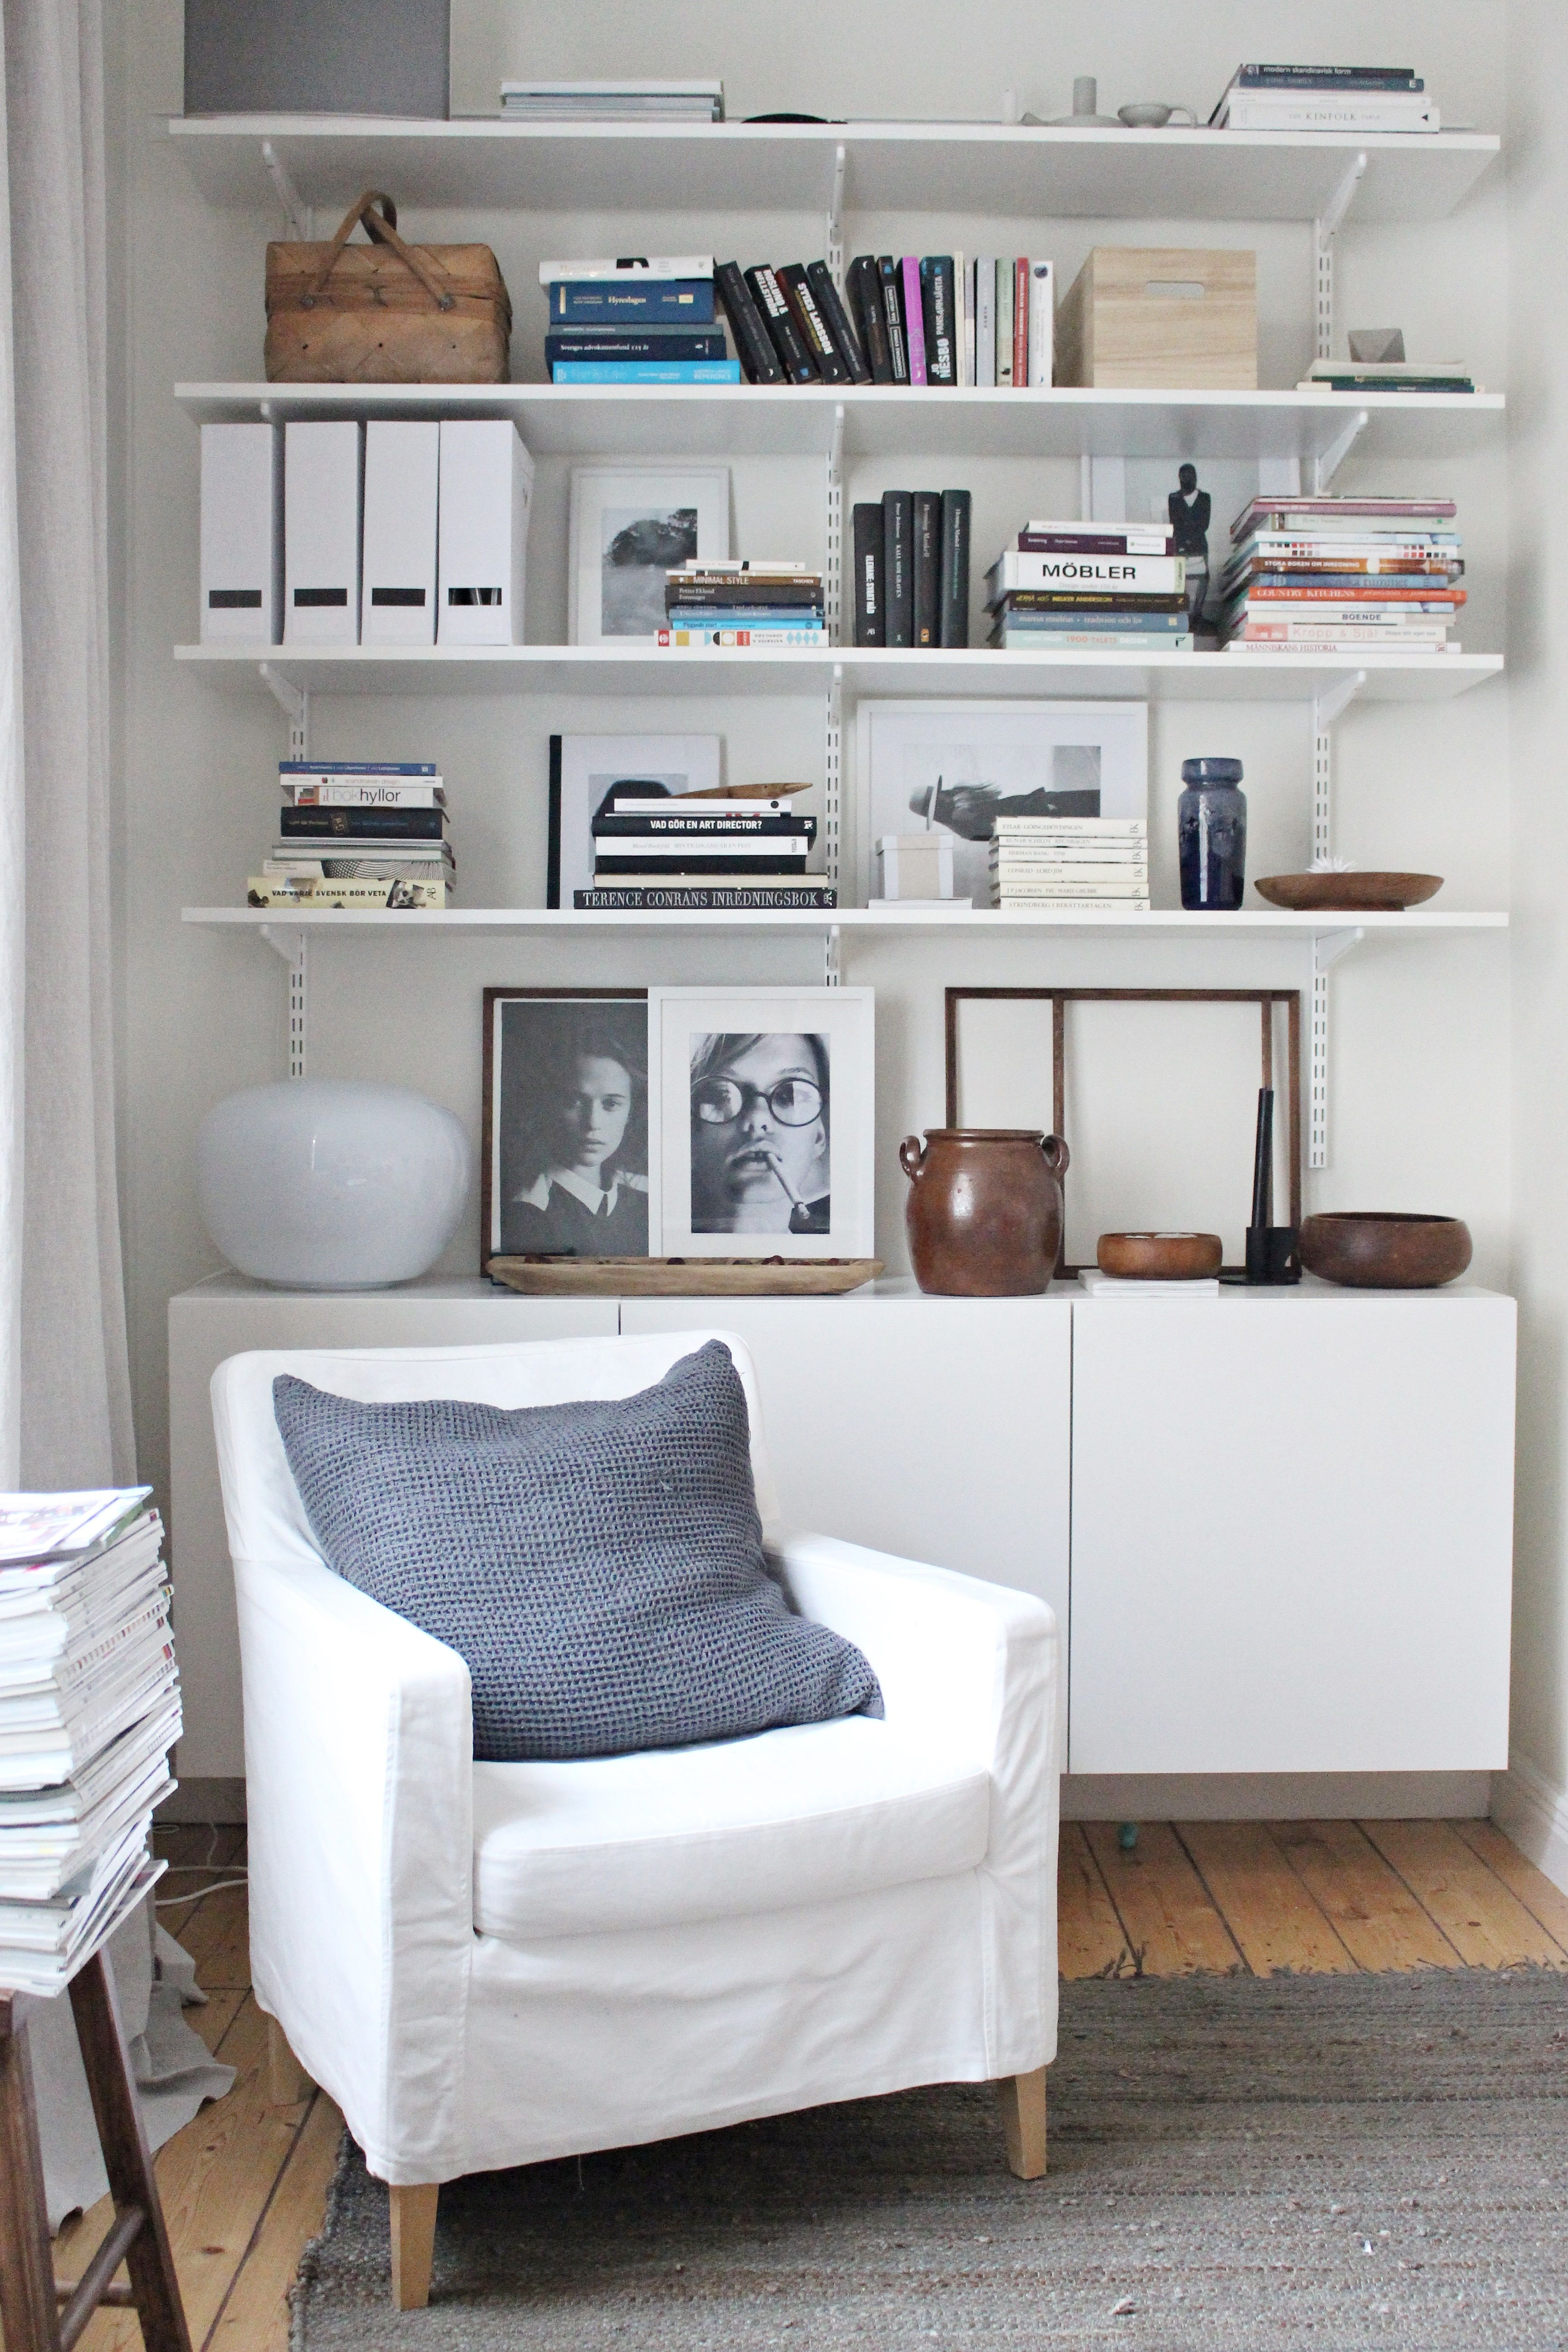 ikea 39 besta 39 cabinet 39 algot 39 shelves interior design pinterest wohnzimmer 1 zimmer. Black Bedroom Furniture Sets. Home Design Ideas